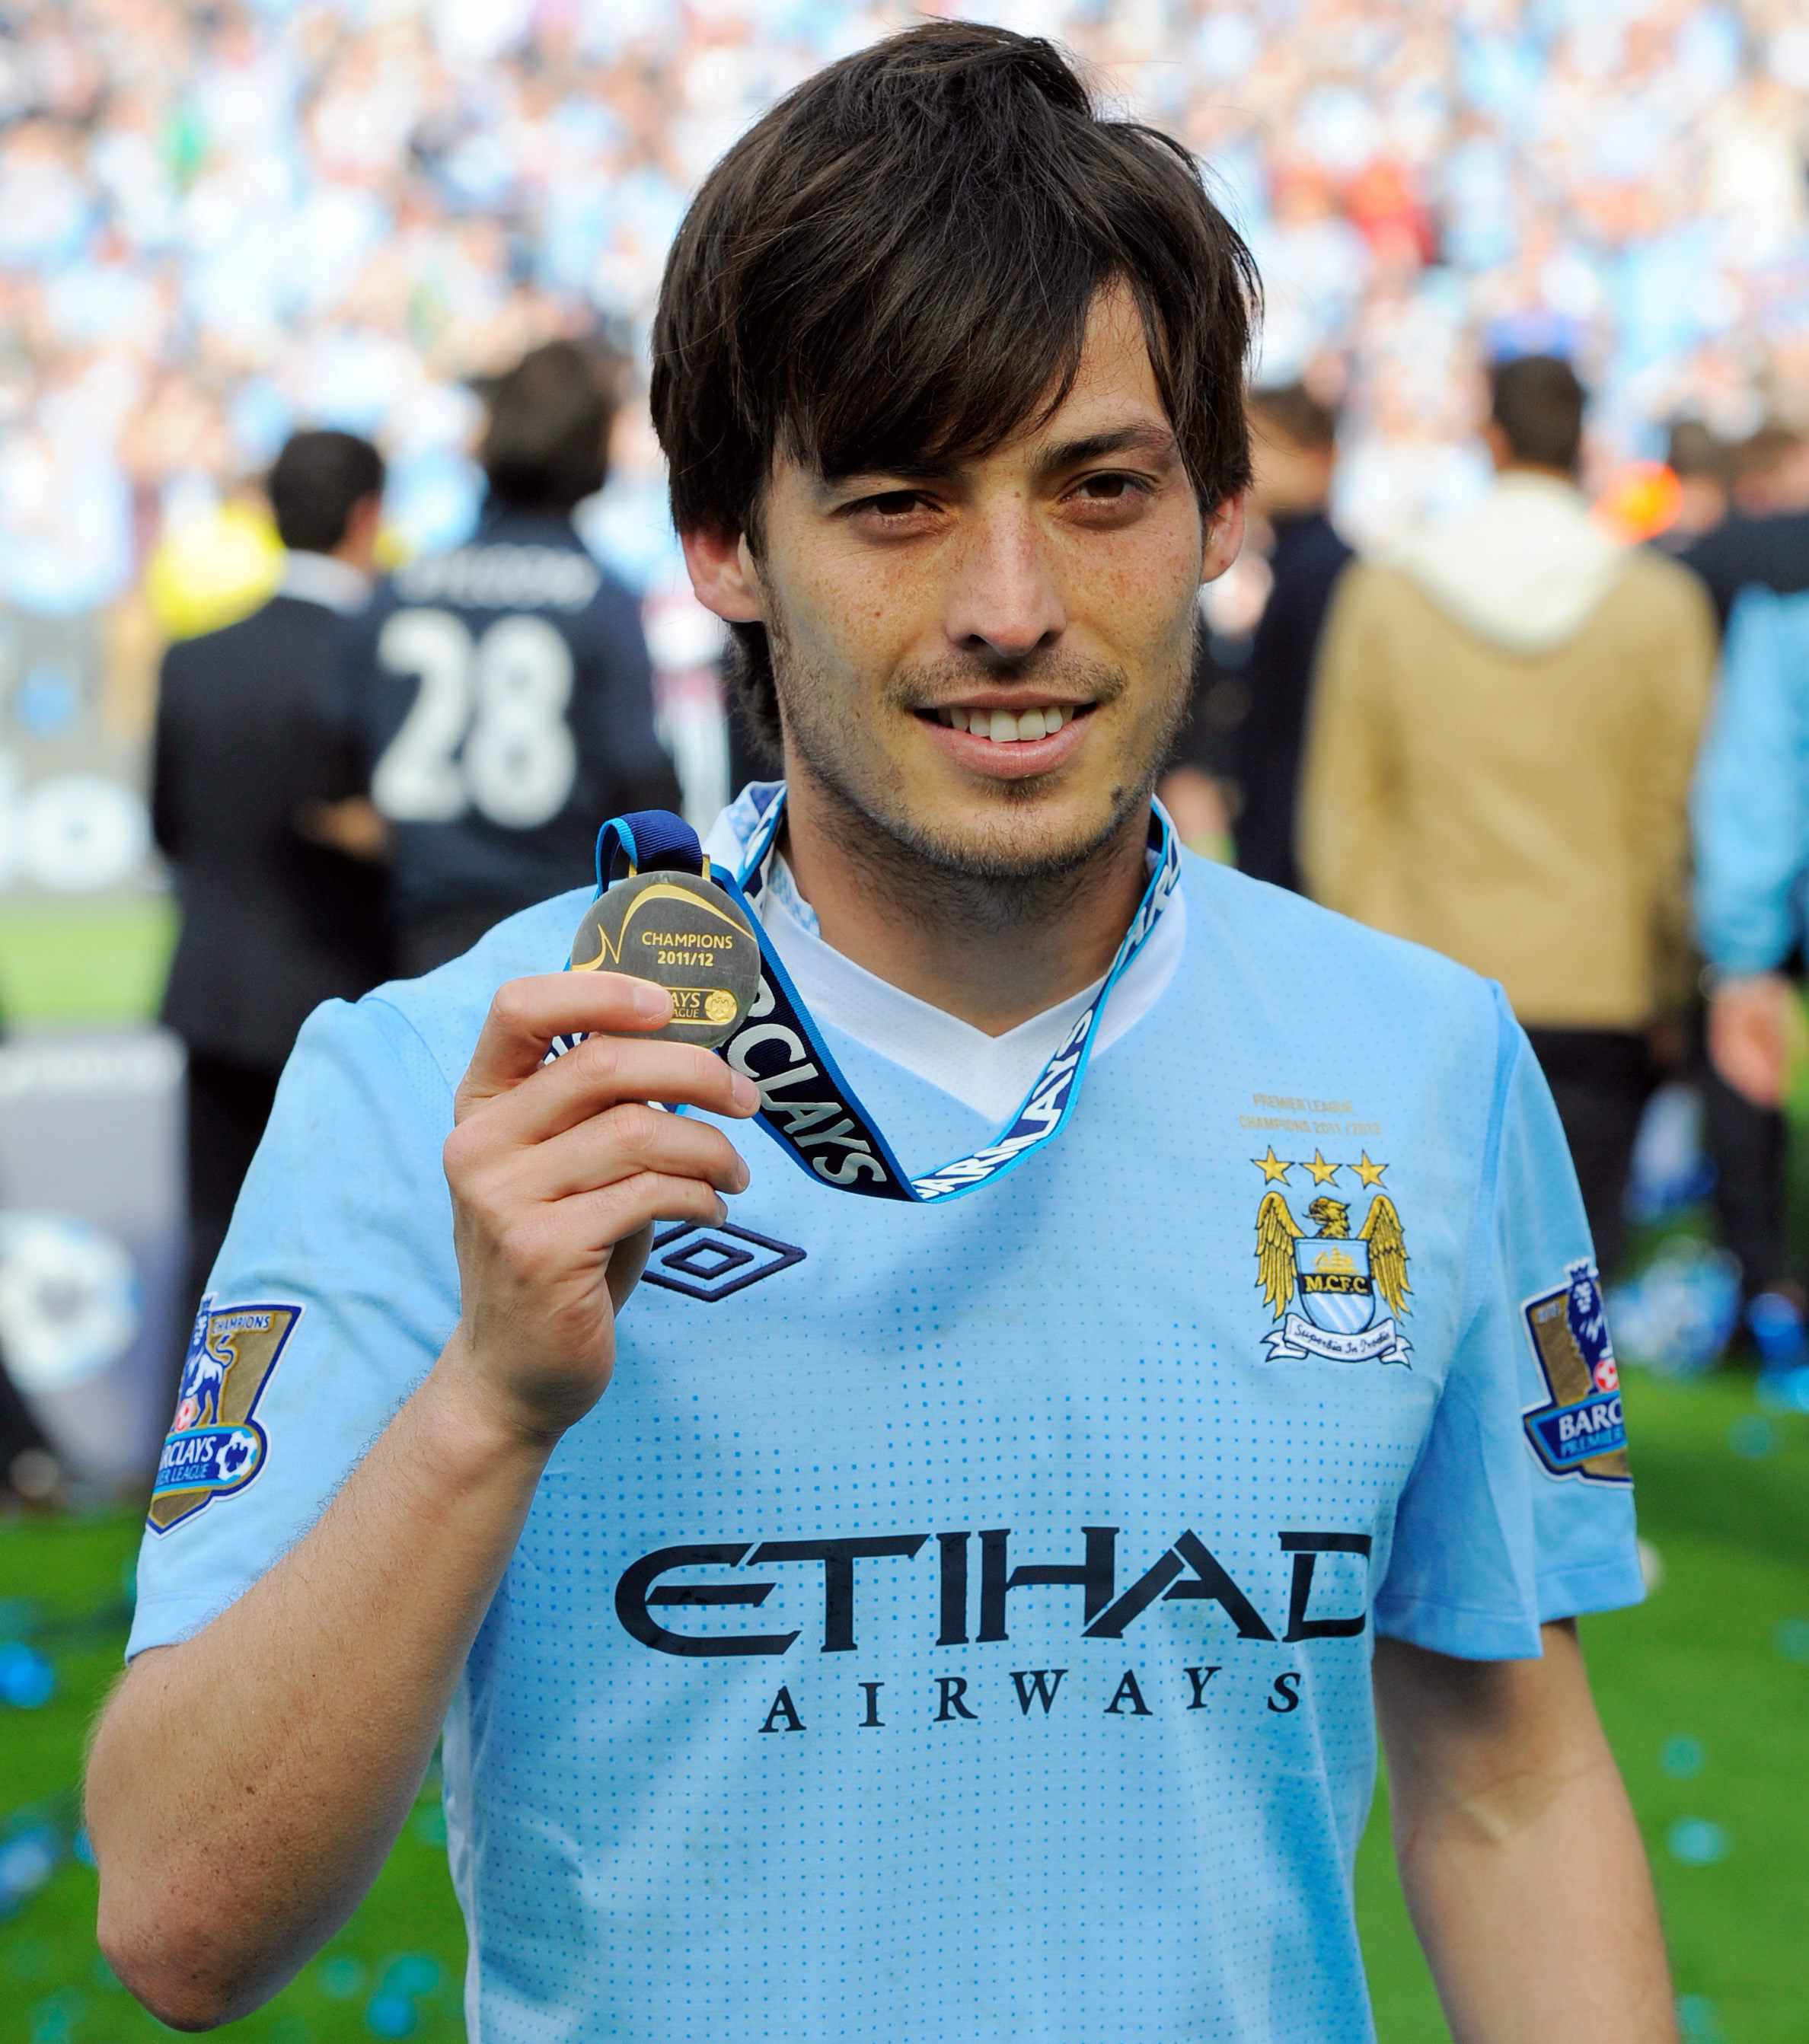 Free Romantic Wallpapers With Quotes David Silva Wallpapers